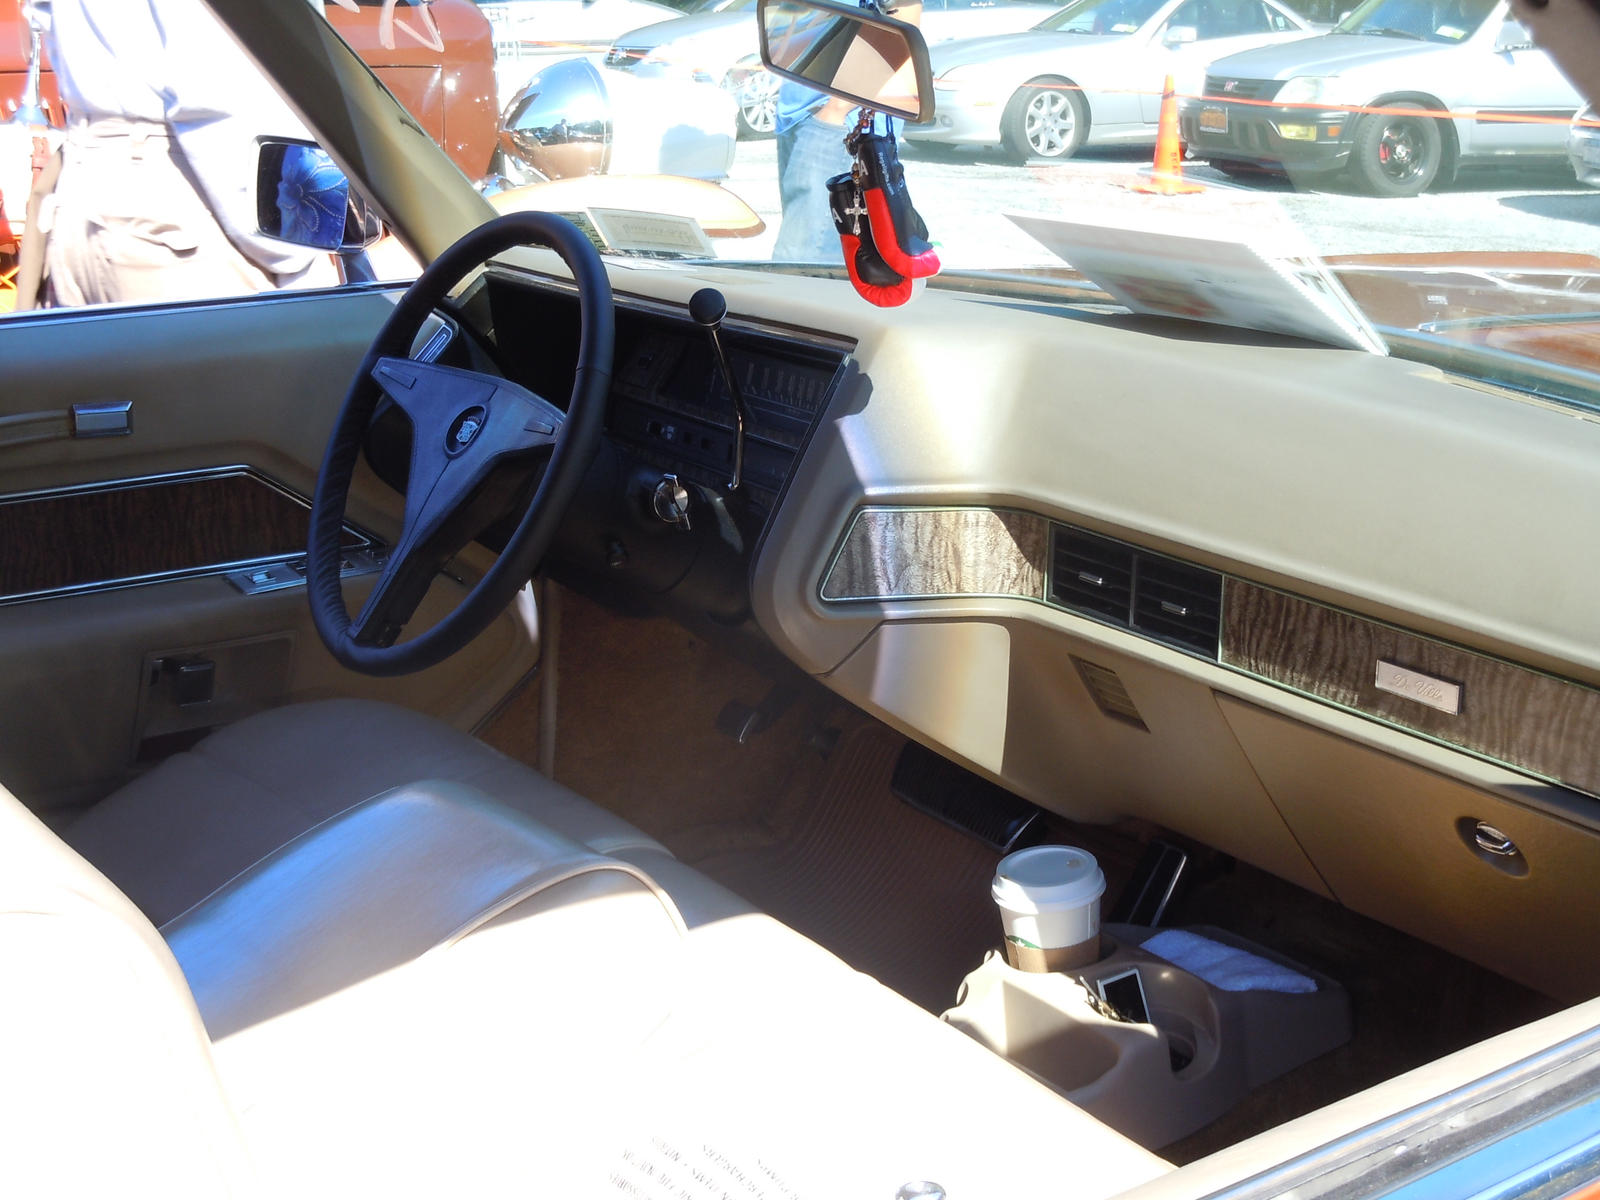 1970 Cadillac Coupe Deville Convertible Interior By Brooklyn47 On Deviantart